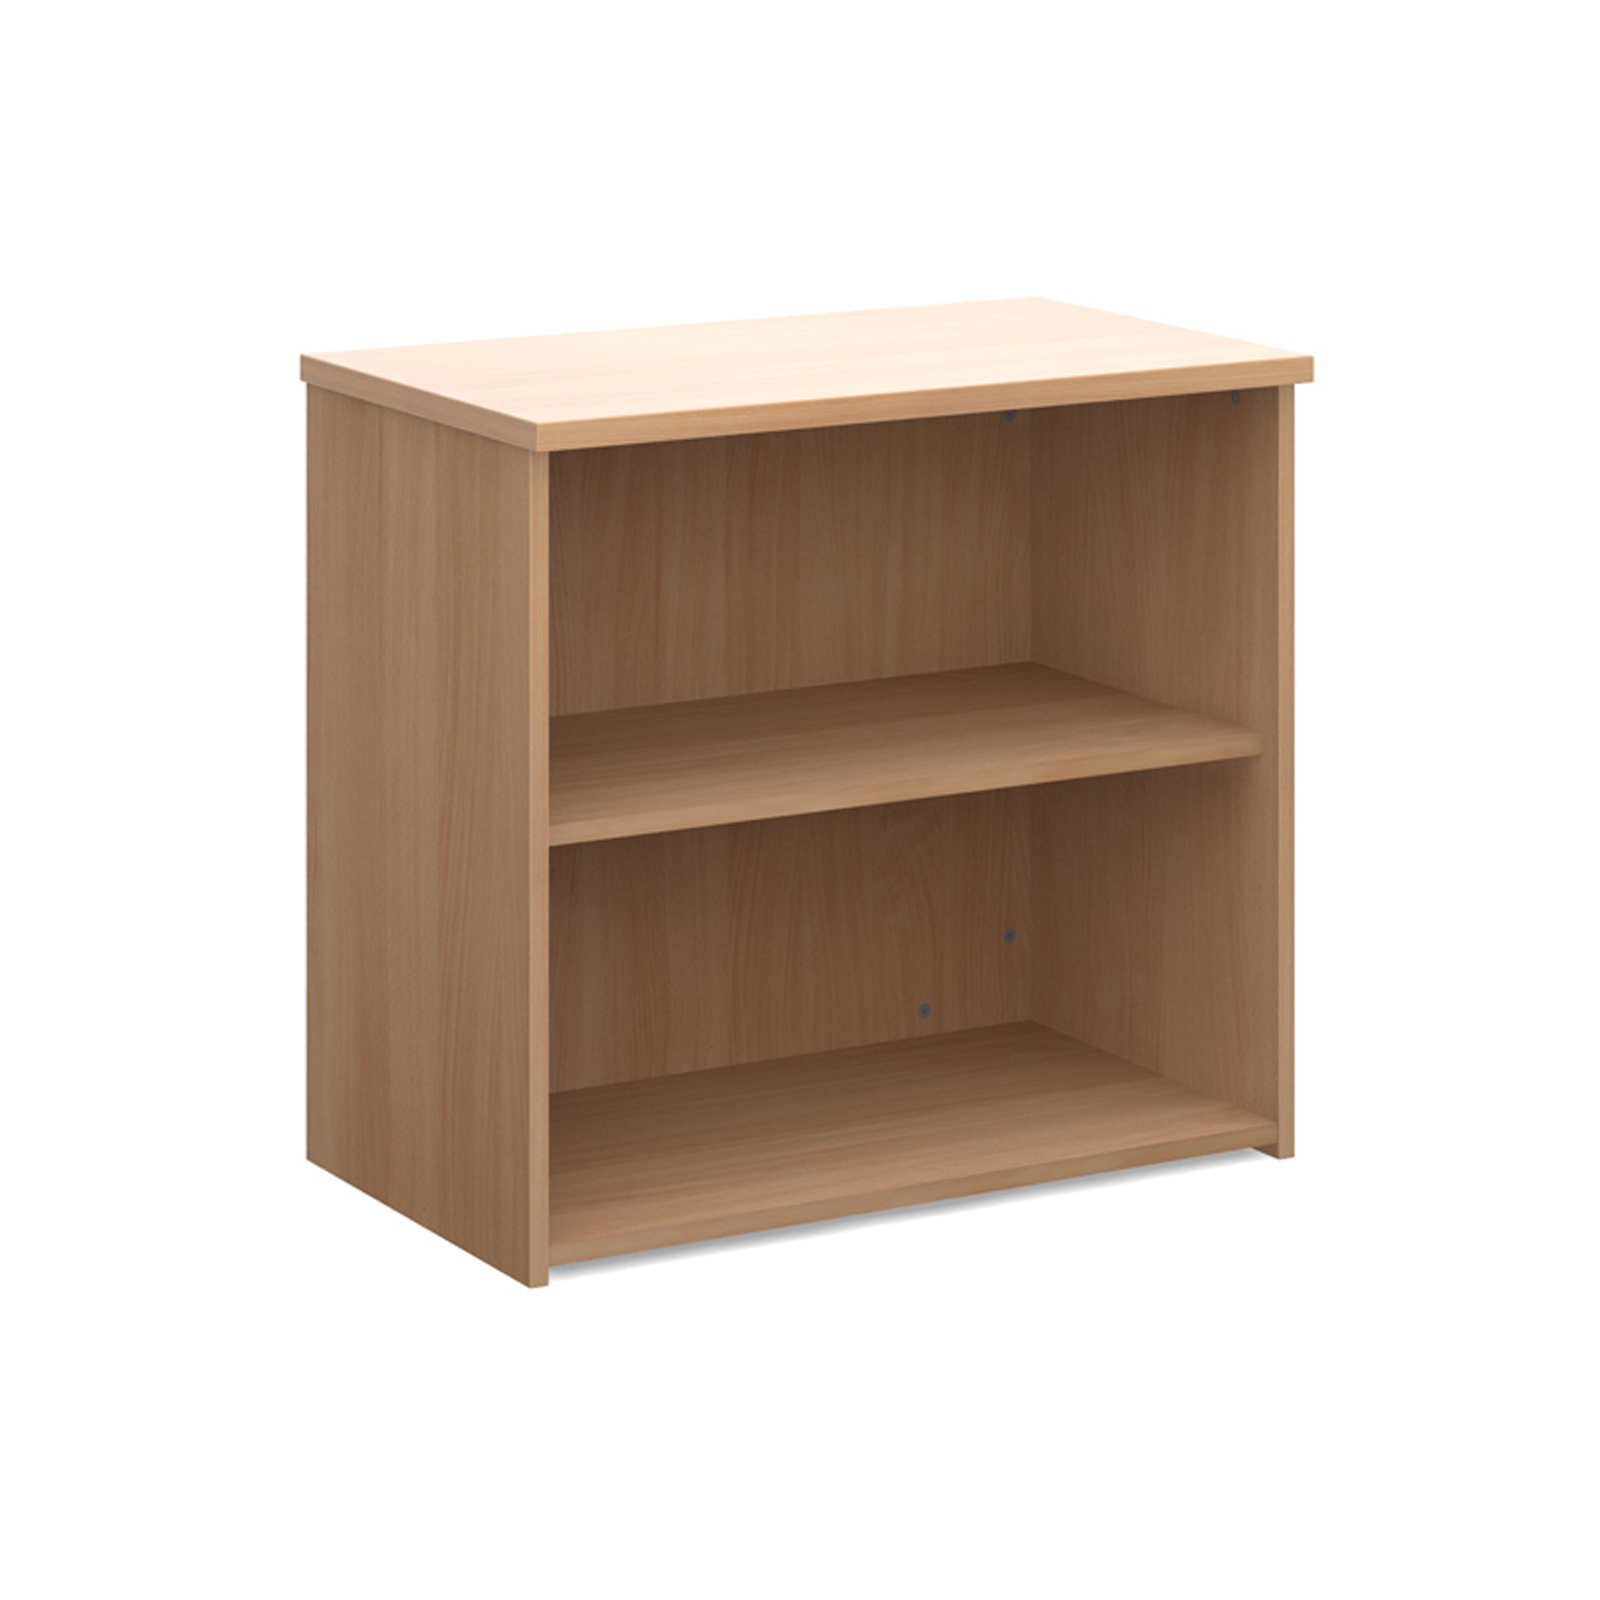 Up To 1200mm High Universal bookcase 740mm high with 1 shelf - beech